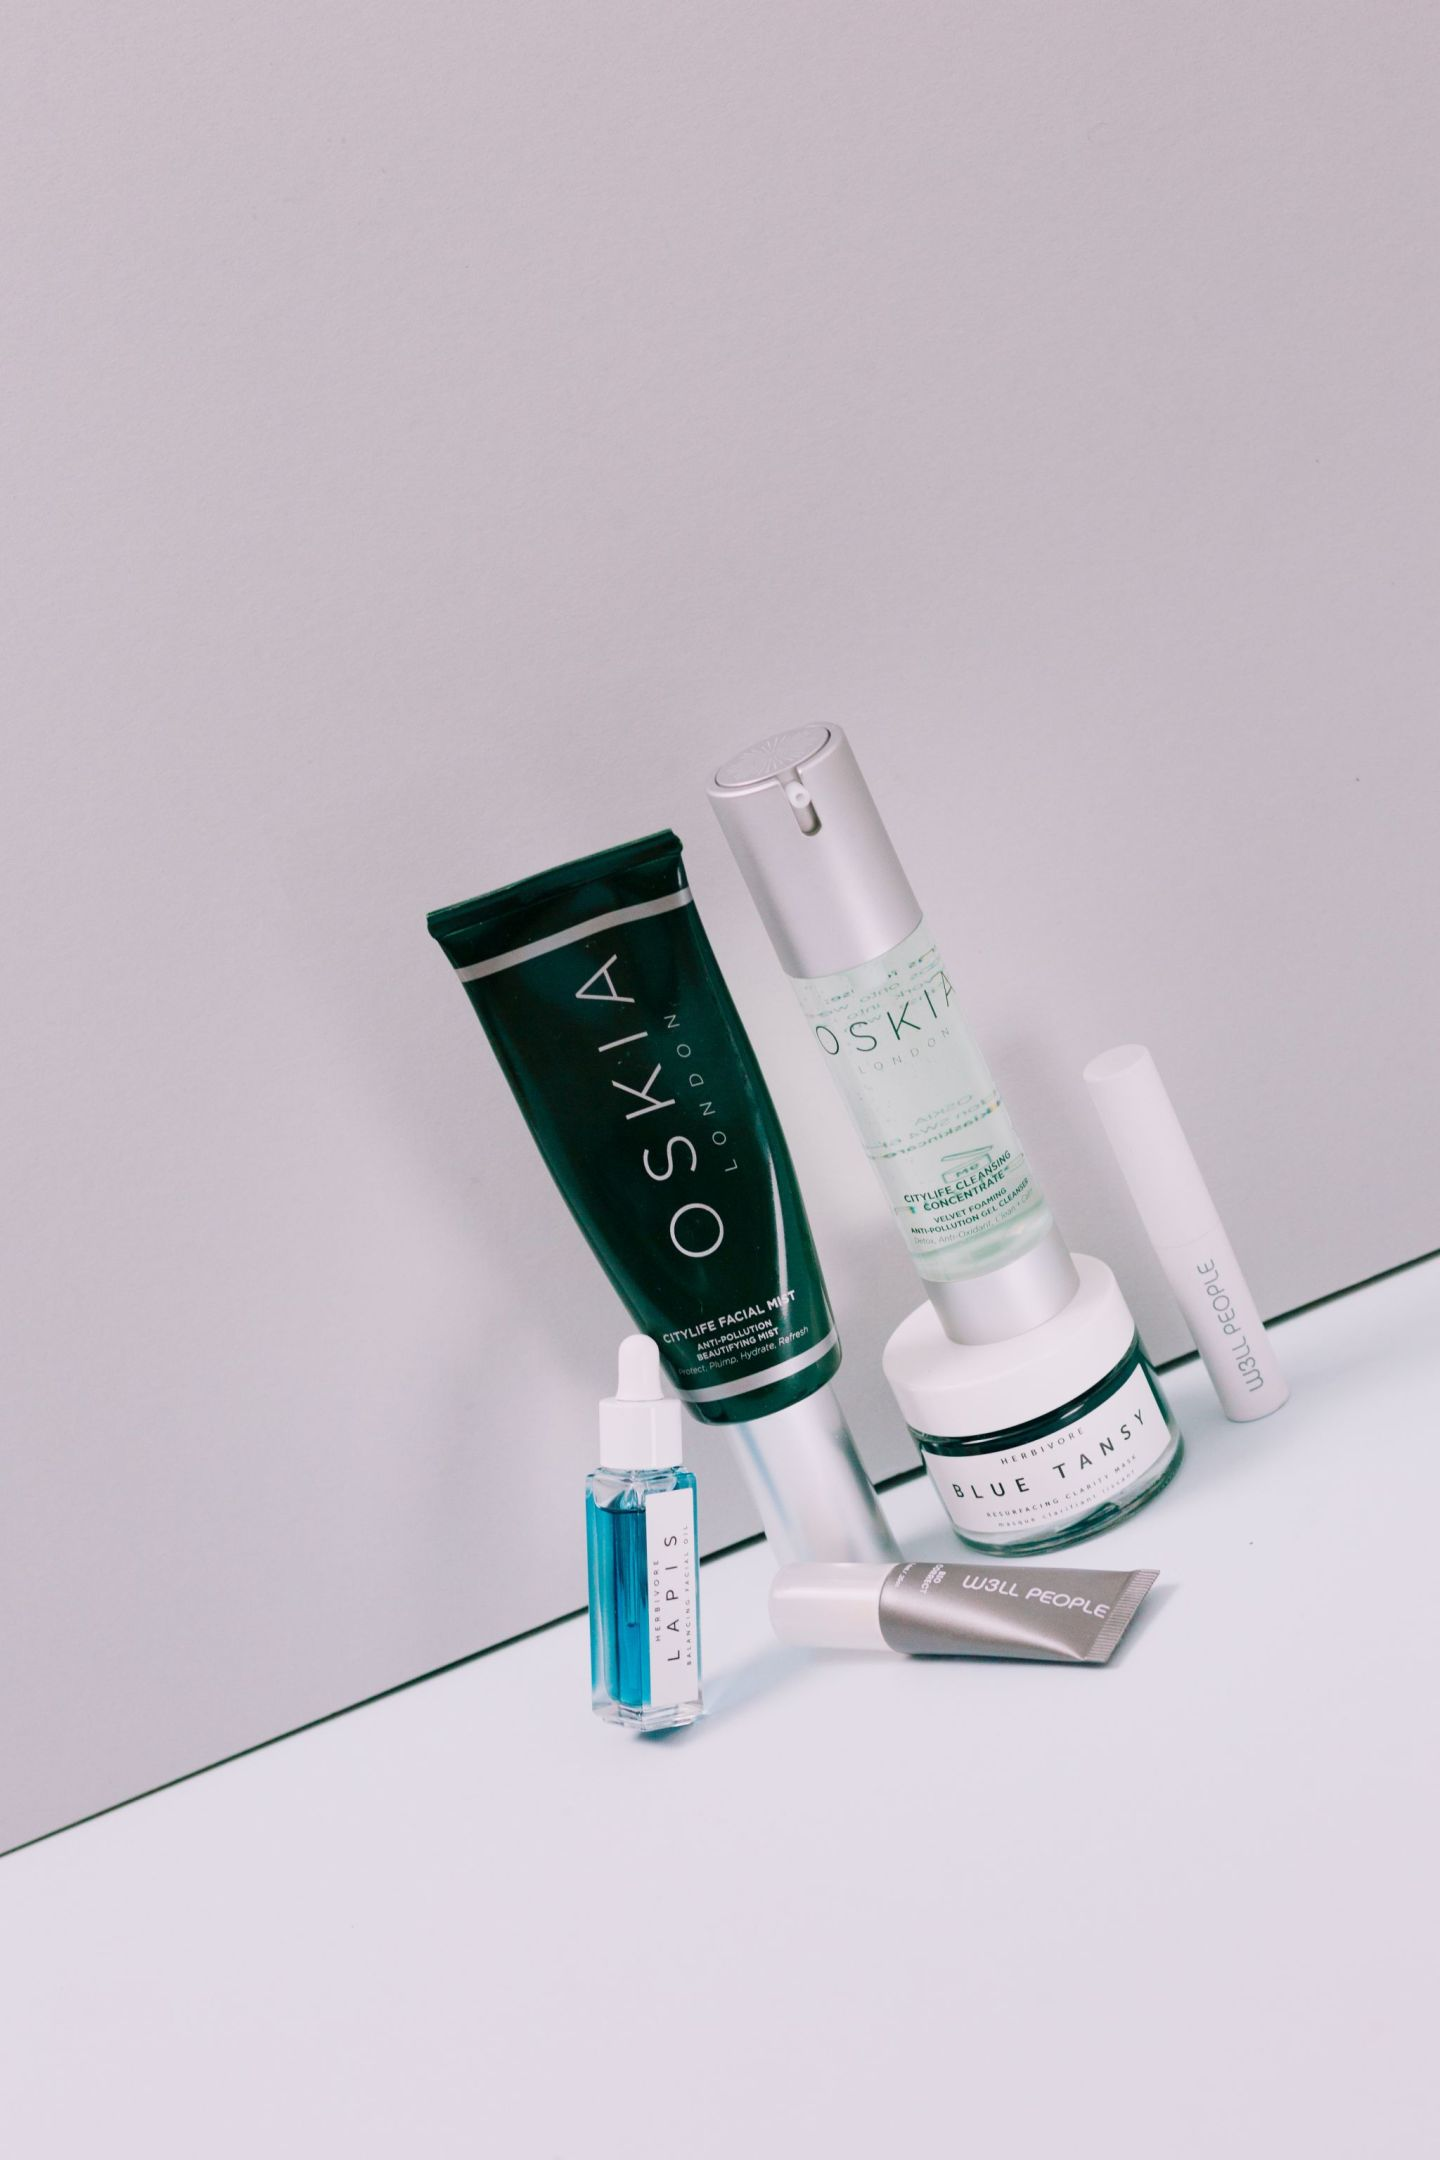 laurenbrittonloves-brittonloves-future-of-skincare-anti-pollution-non-toxic-beauty-review-oskia-w3ll-people-vegan